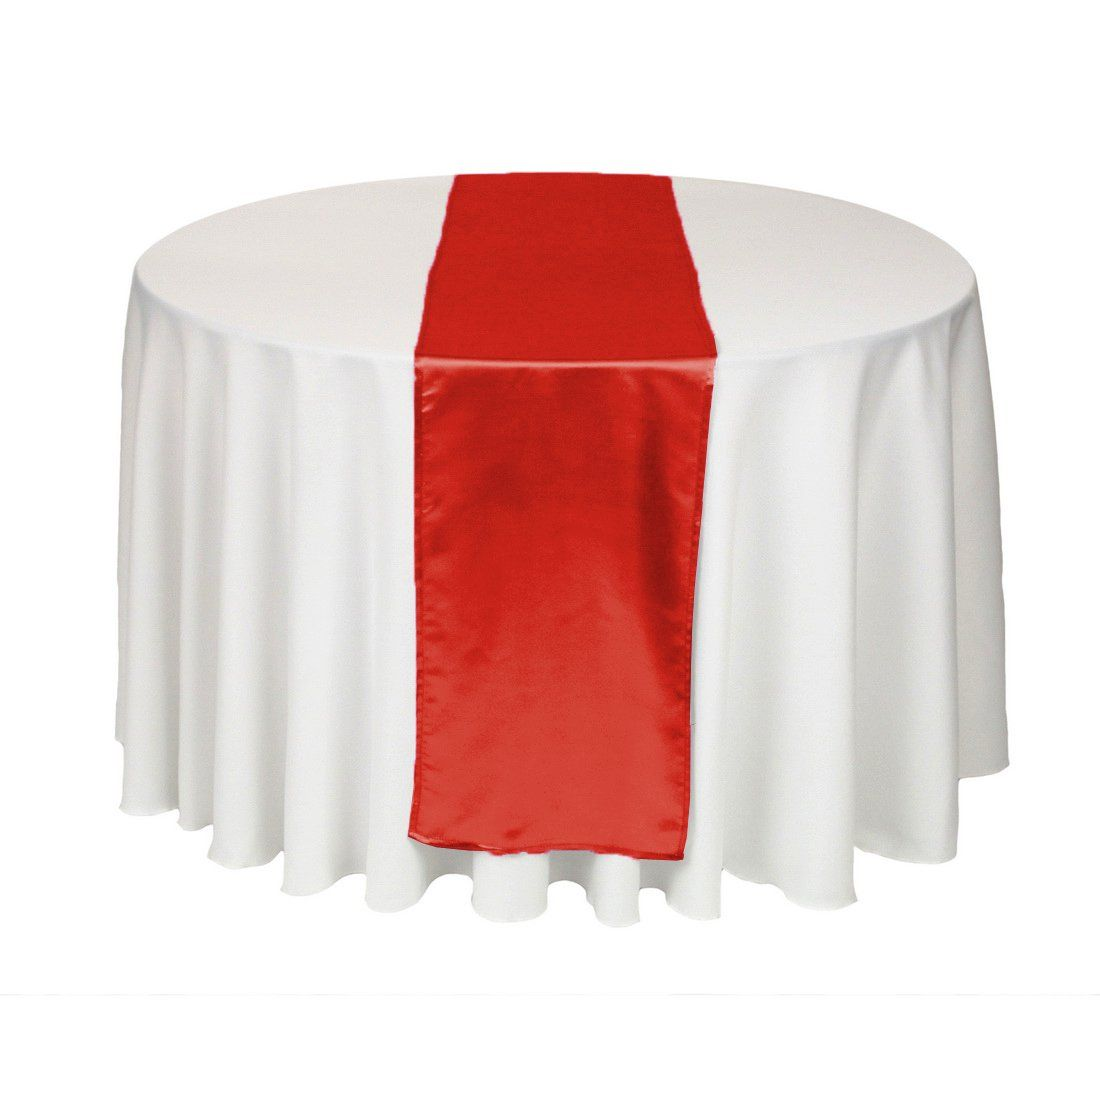 LinenTablecloth 14 x 108-Inch Satin Table Runner Red  Would be nice to do white table cloths with red runners down the center - keep an eye out for cheap linens $5.99 as an add on item.